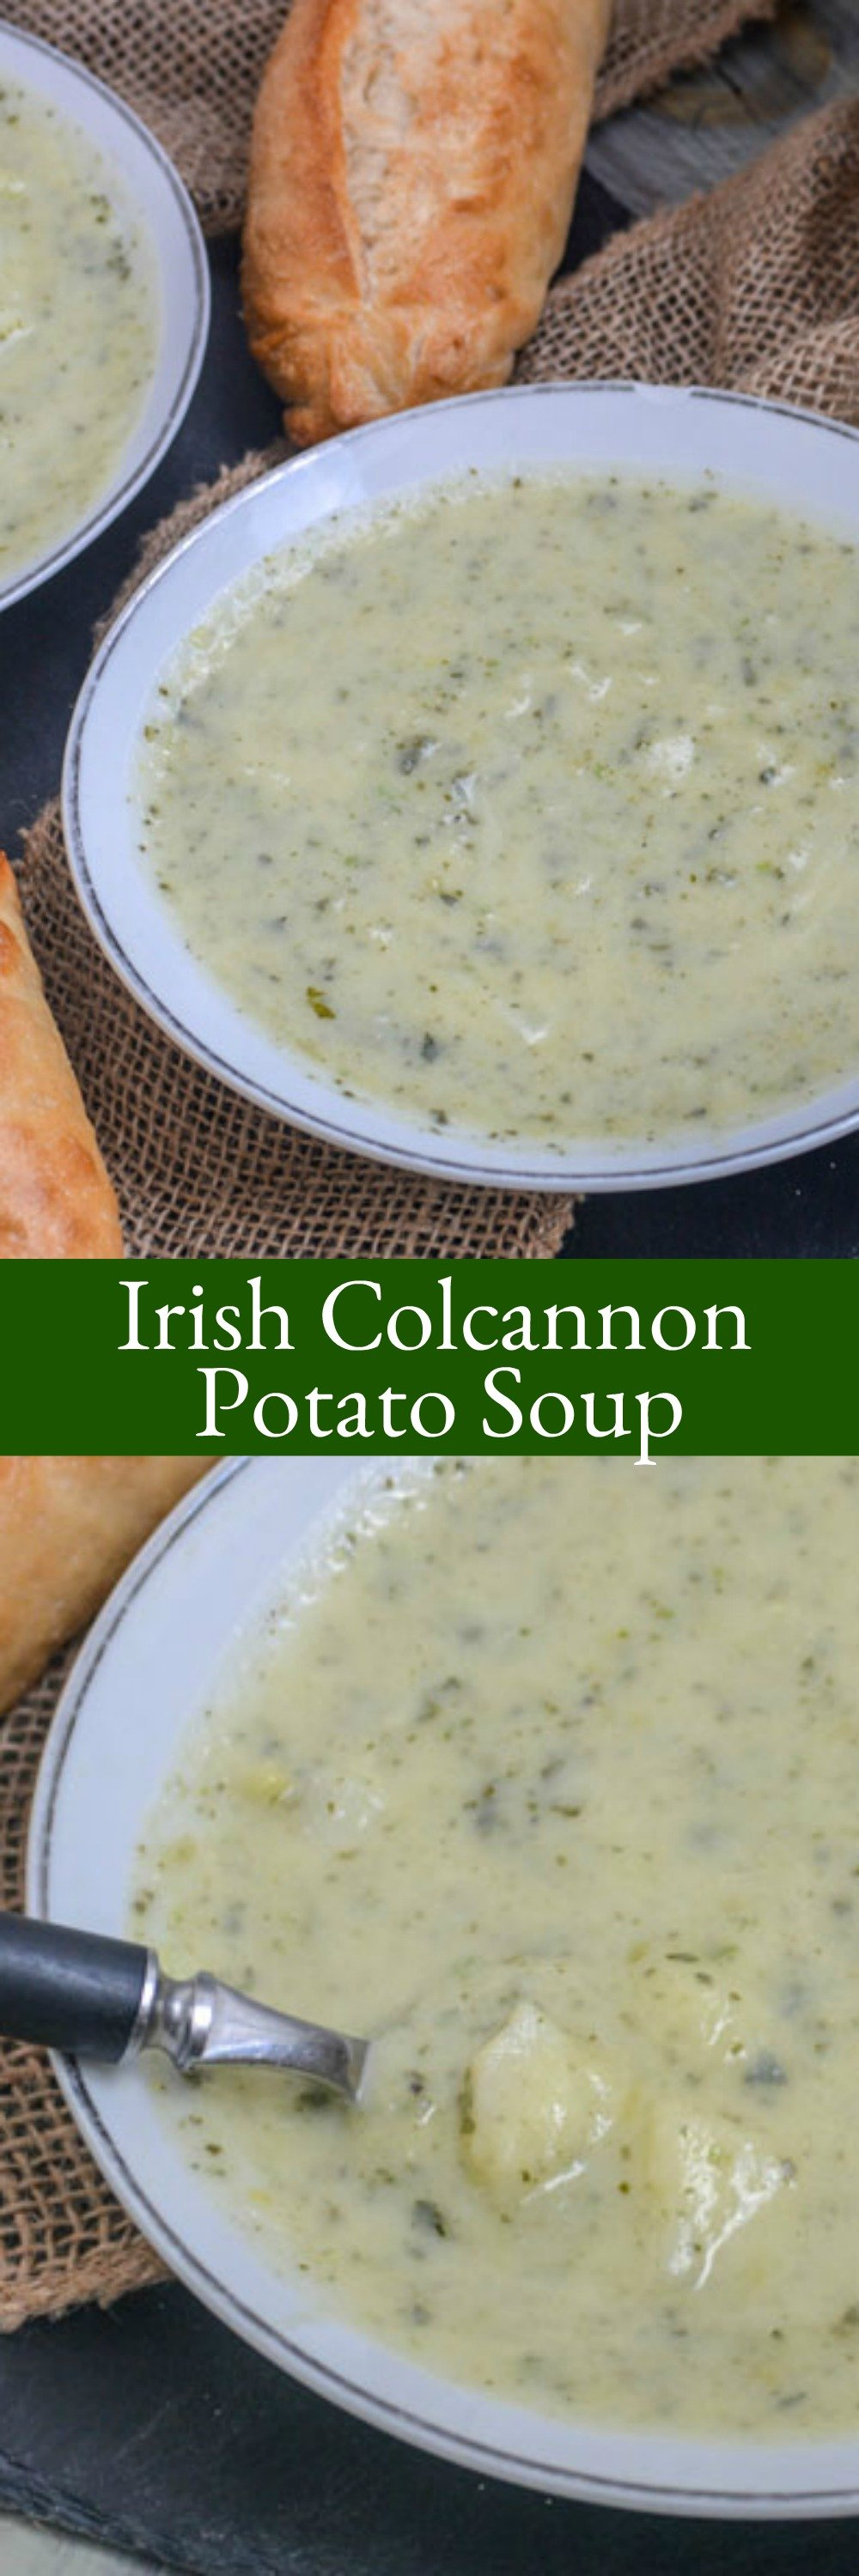 This creamy Irish Colcannon Potato Soup is perfect for Winter weather comfort food, and makes for a filling lunch or a hearty meatless dinner.